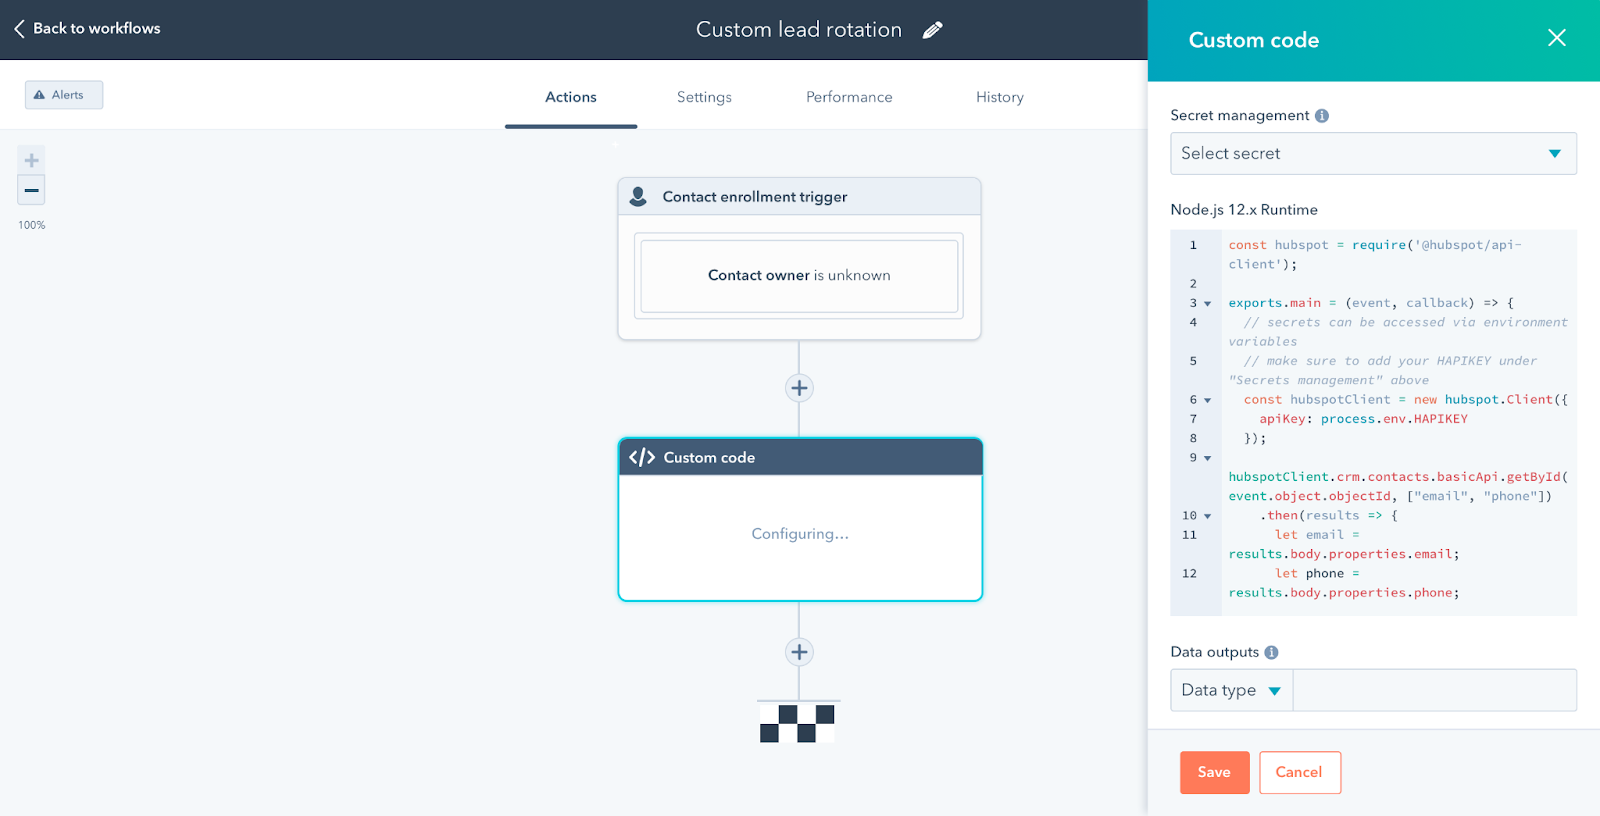 HubSpot screenshot showing coded workflows